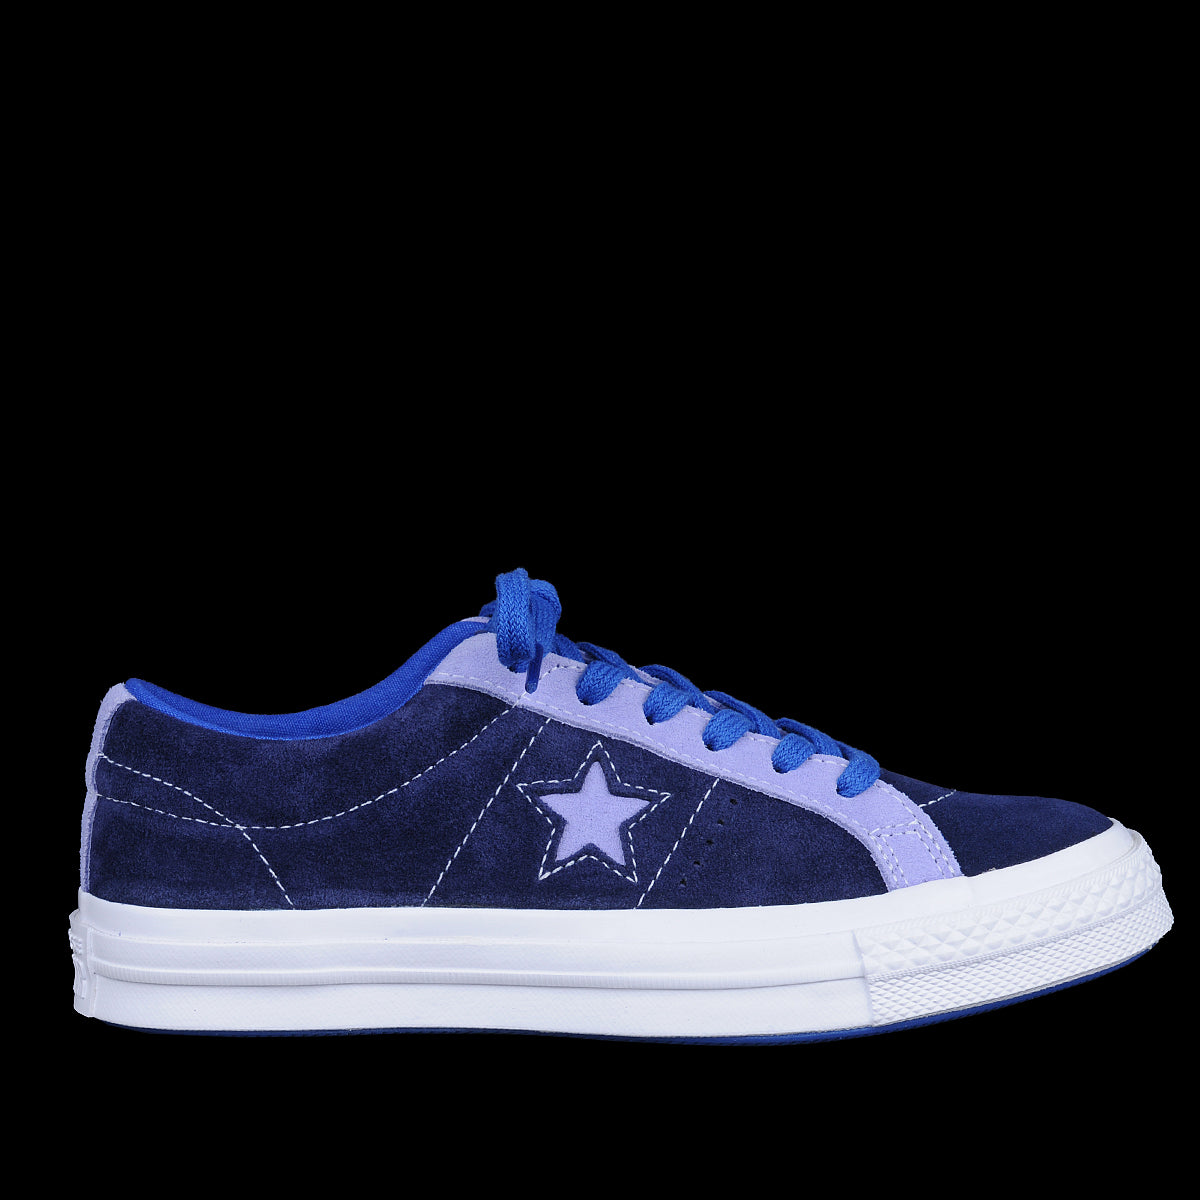 9aface7240b0be Converse - One Star Ox in Eclipse   Twilight Pulse - UNIONMADE